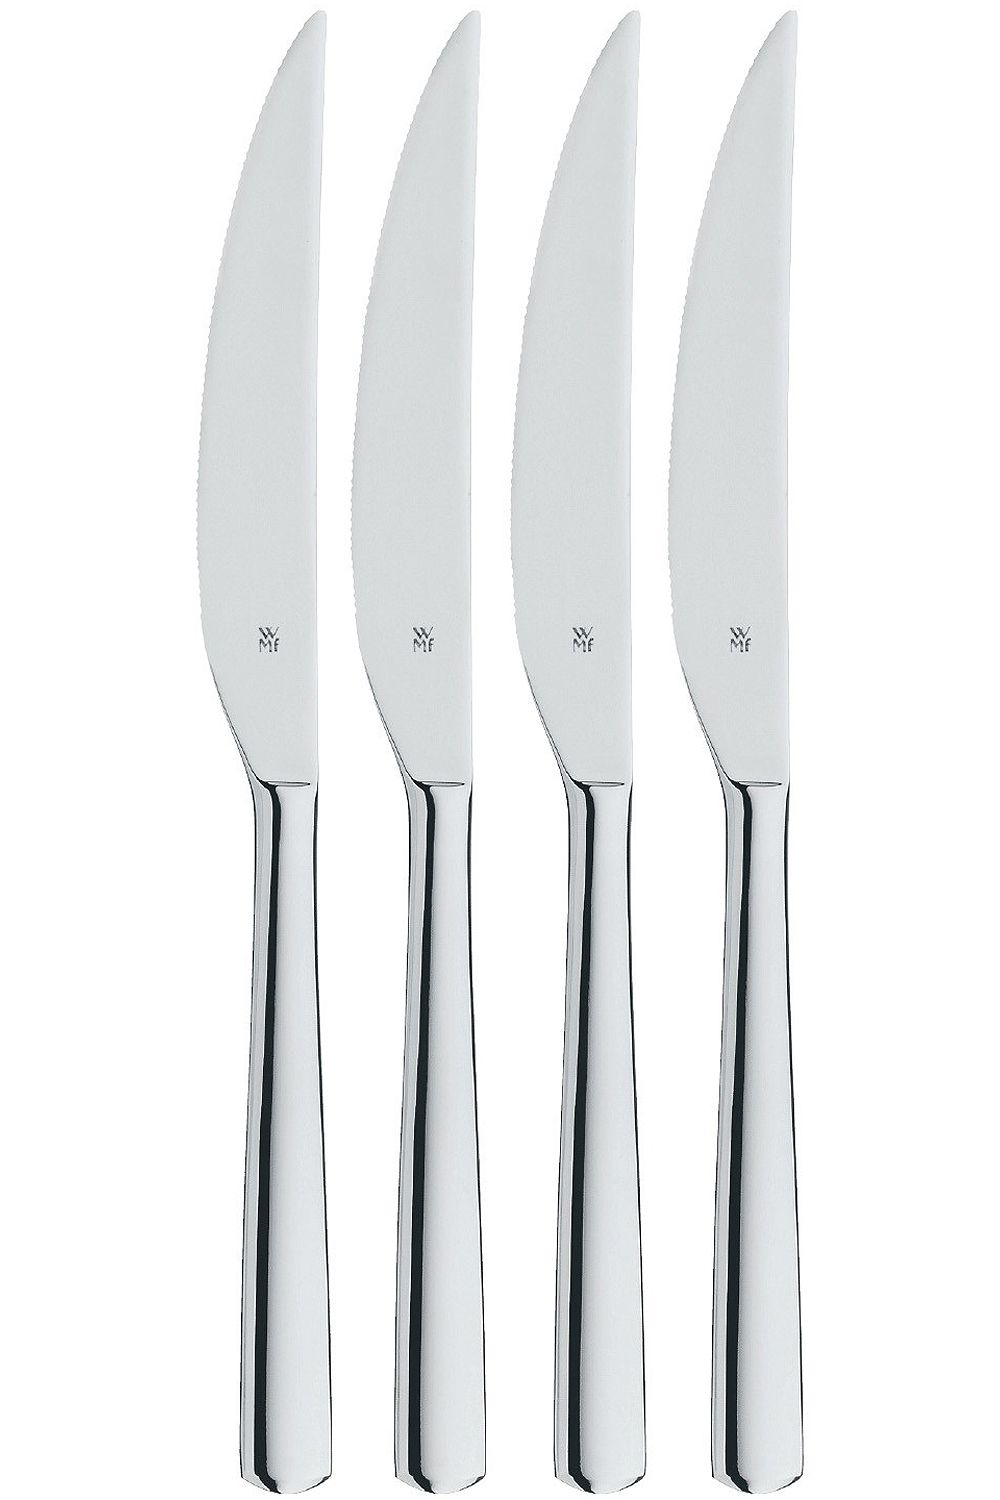 wmf bistro 4 piece steak knife set. Black Bedroom Furniture Sets. Home Design Ideas